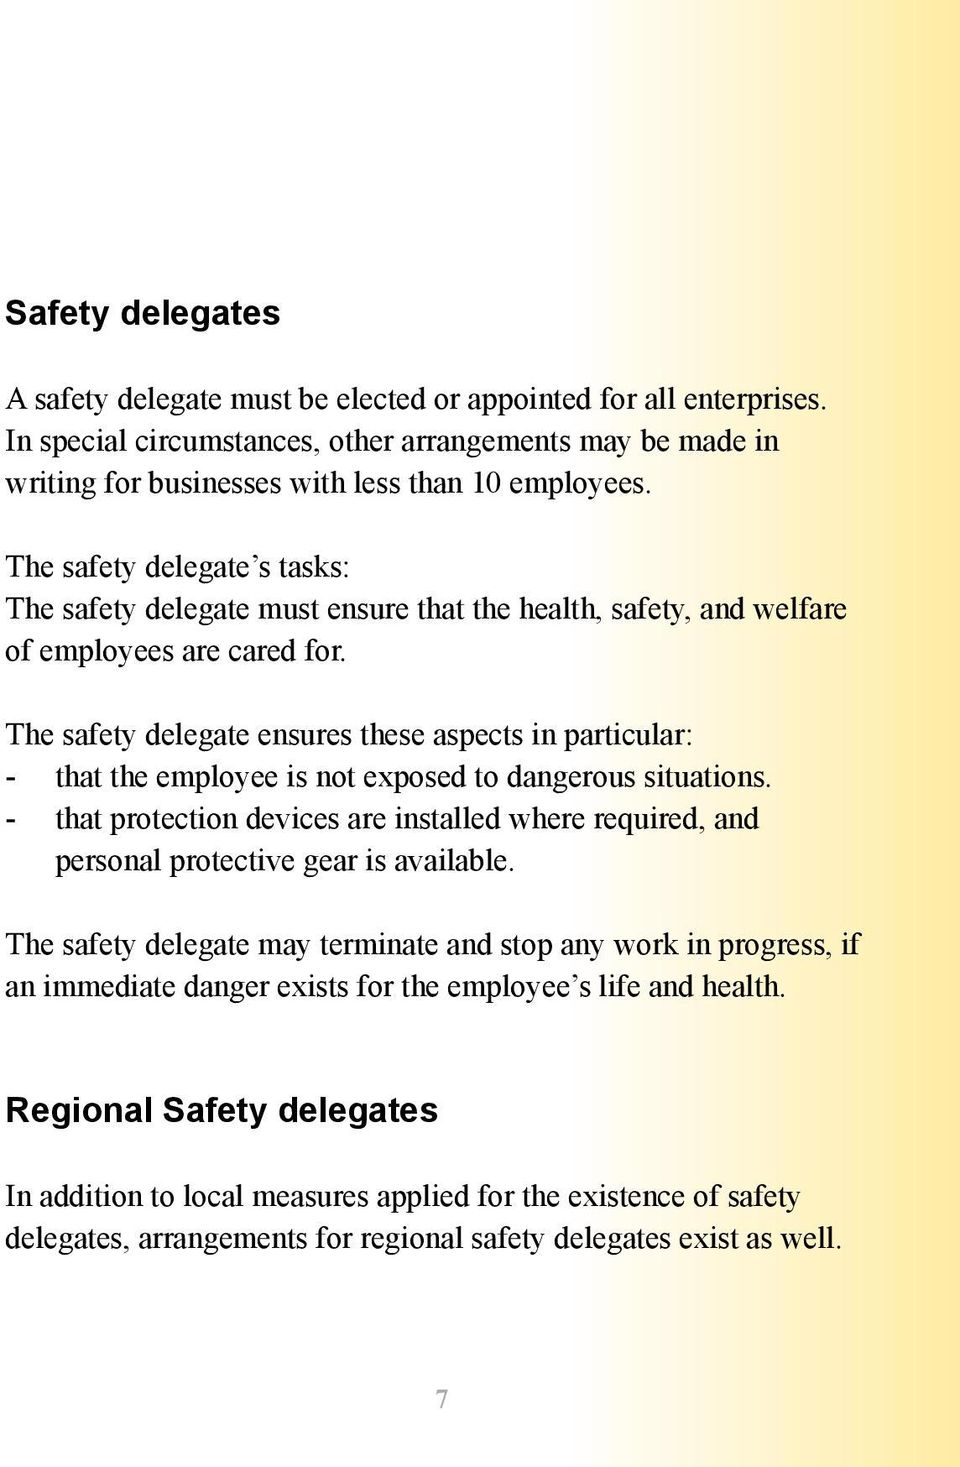 The safety delegate ensures these aspects in particular: - that the employee is not exposed to dangerous situations.